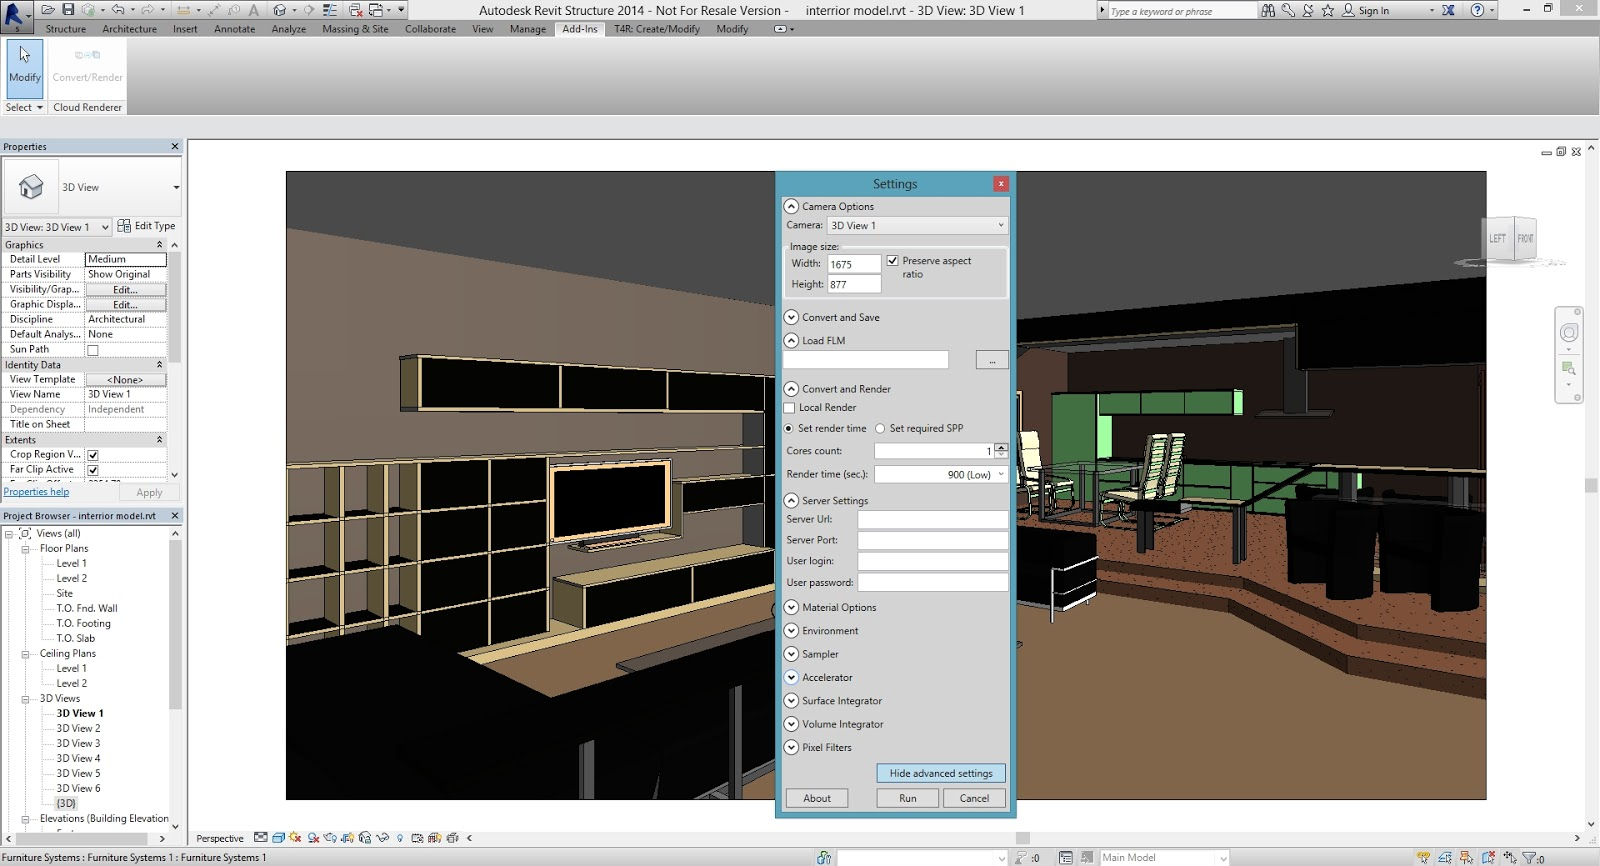 Autodesk view 2.0 network 25 user